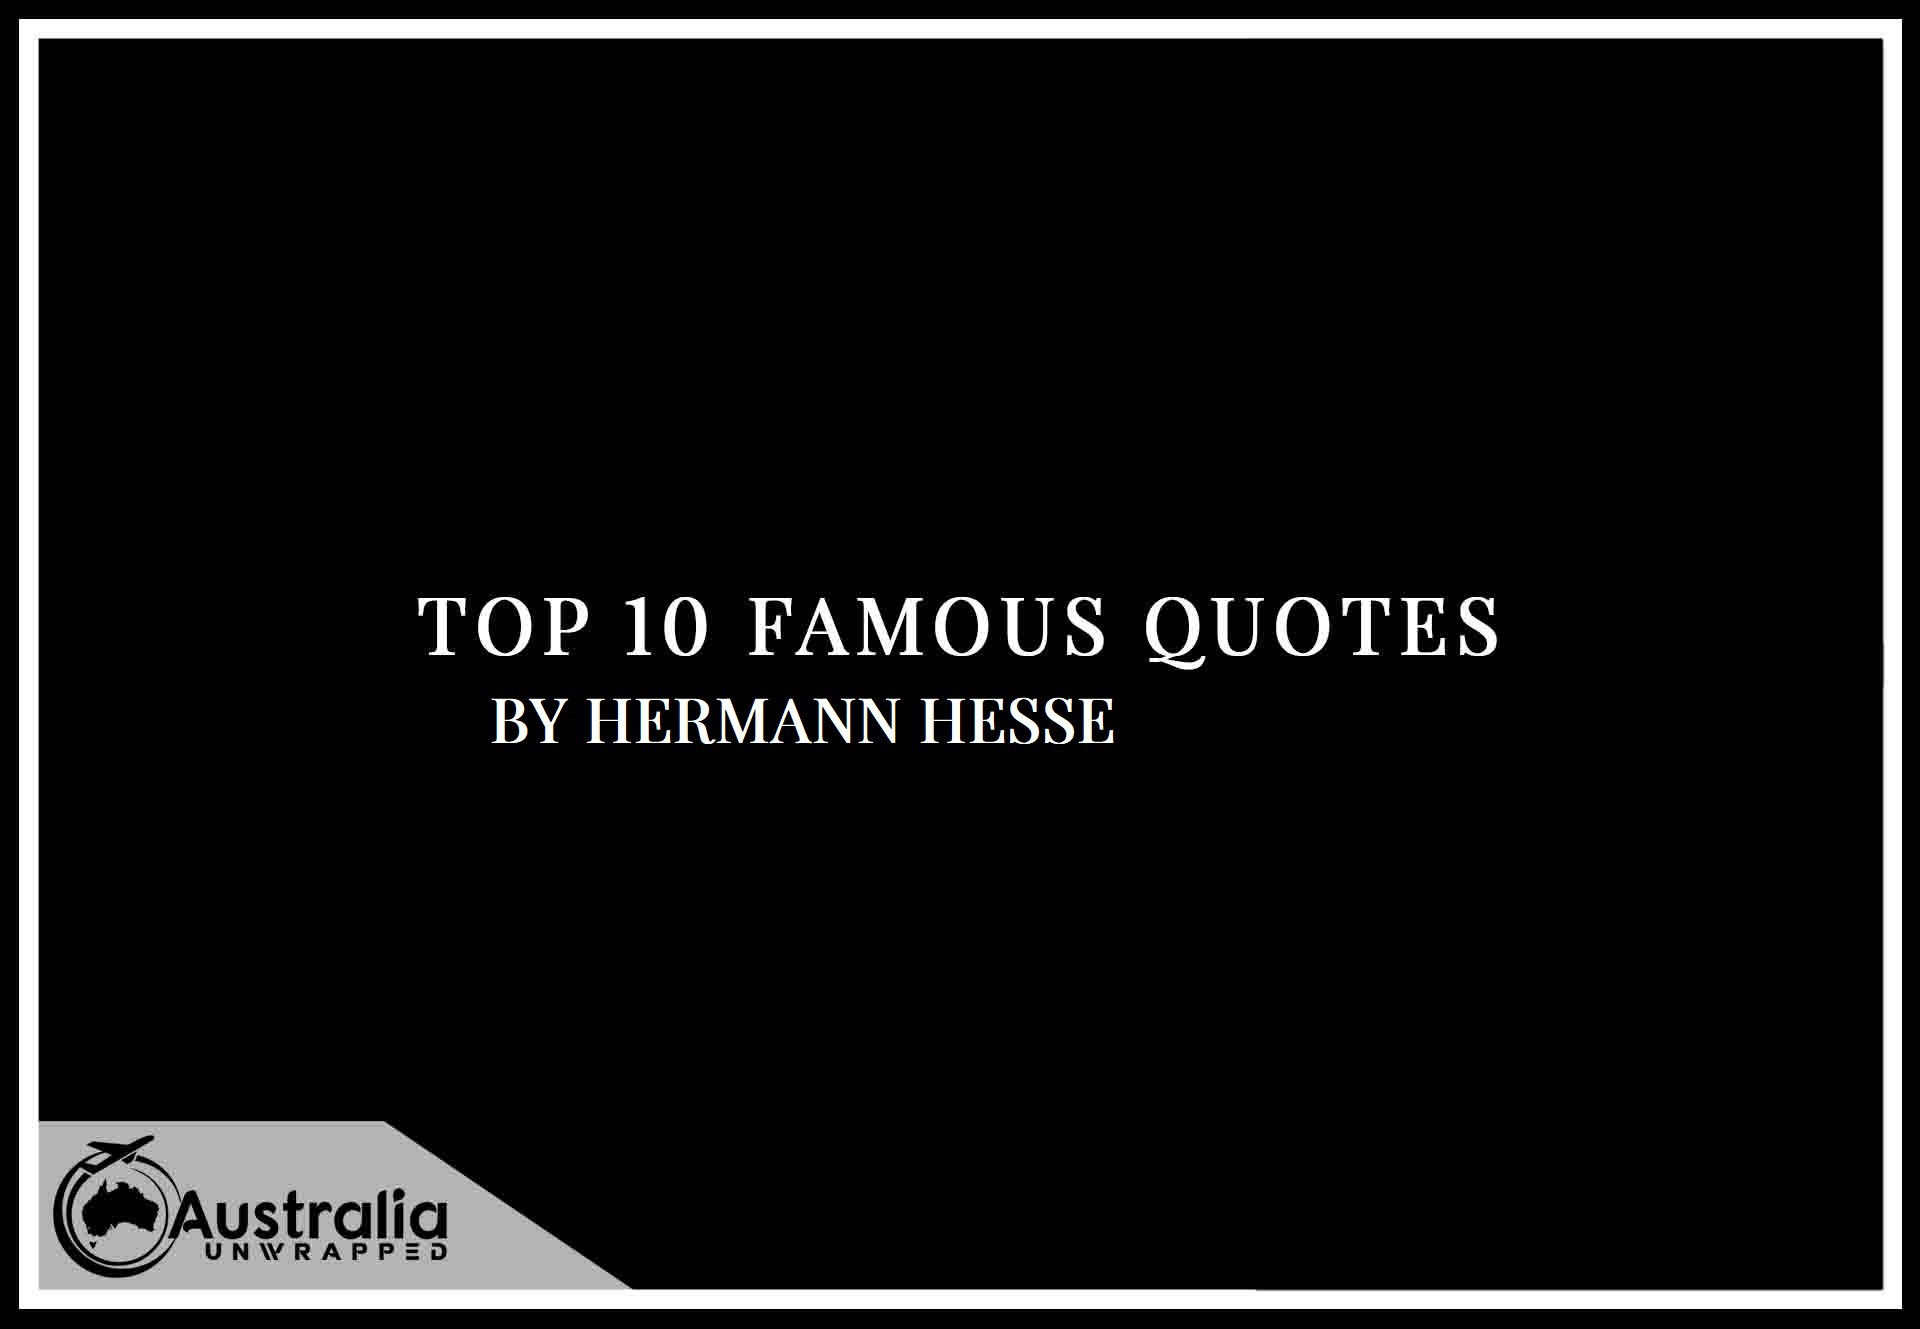 Top 10 Famous Quotes by Author Herman Hesse